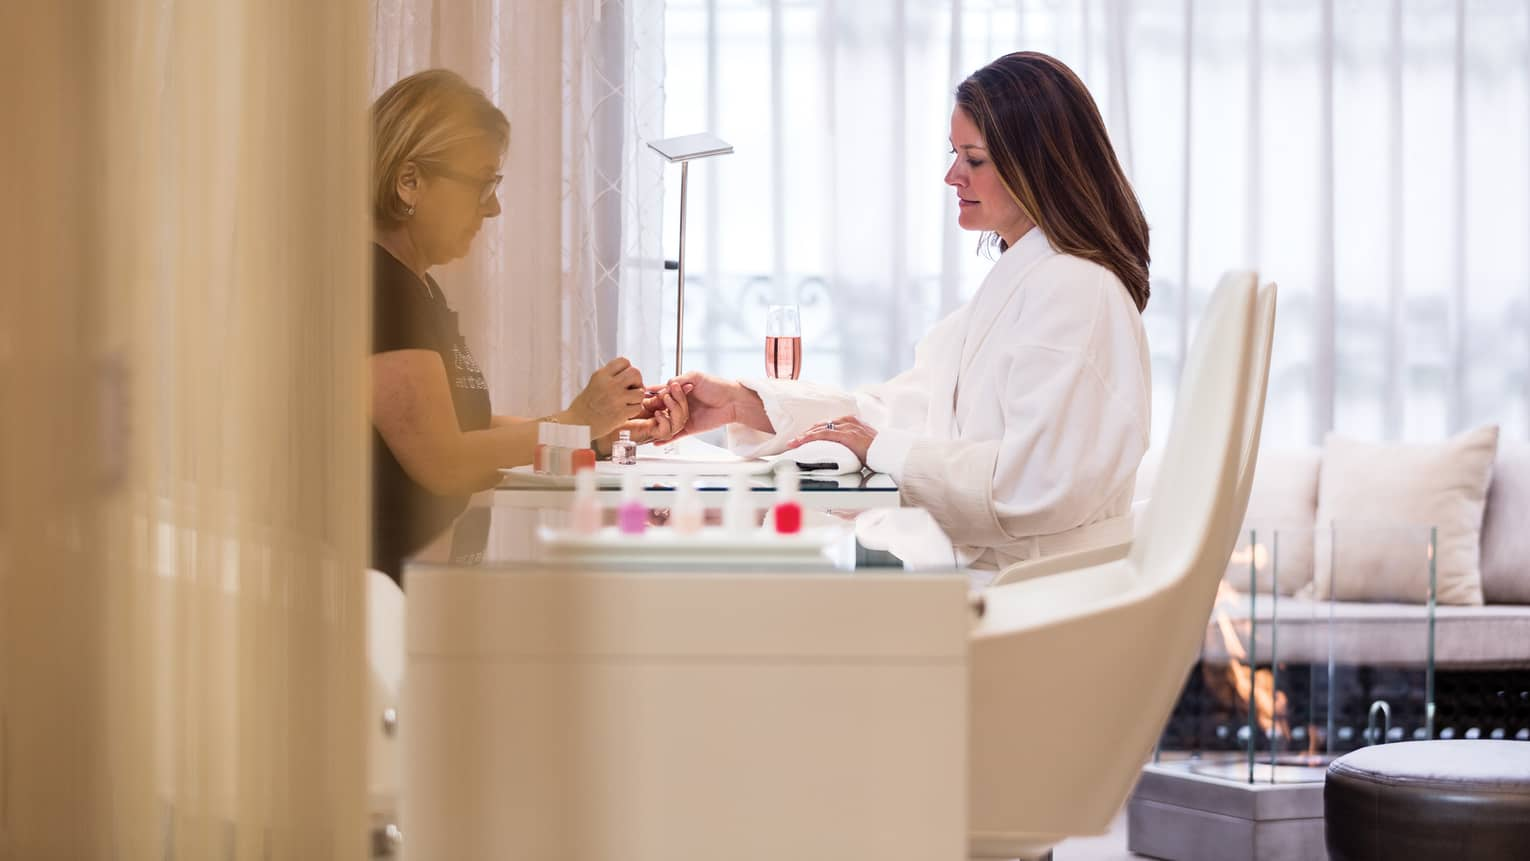 Woman in white robe sits at spa table as salon staff gives her manicure